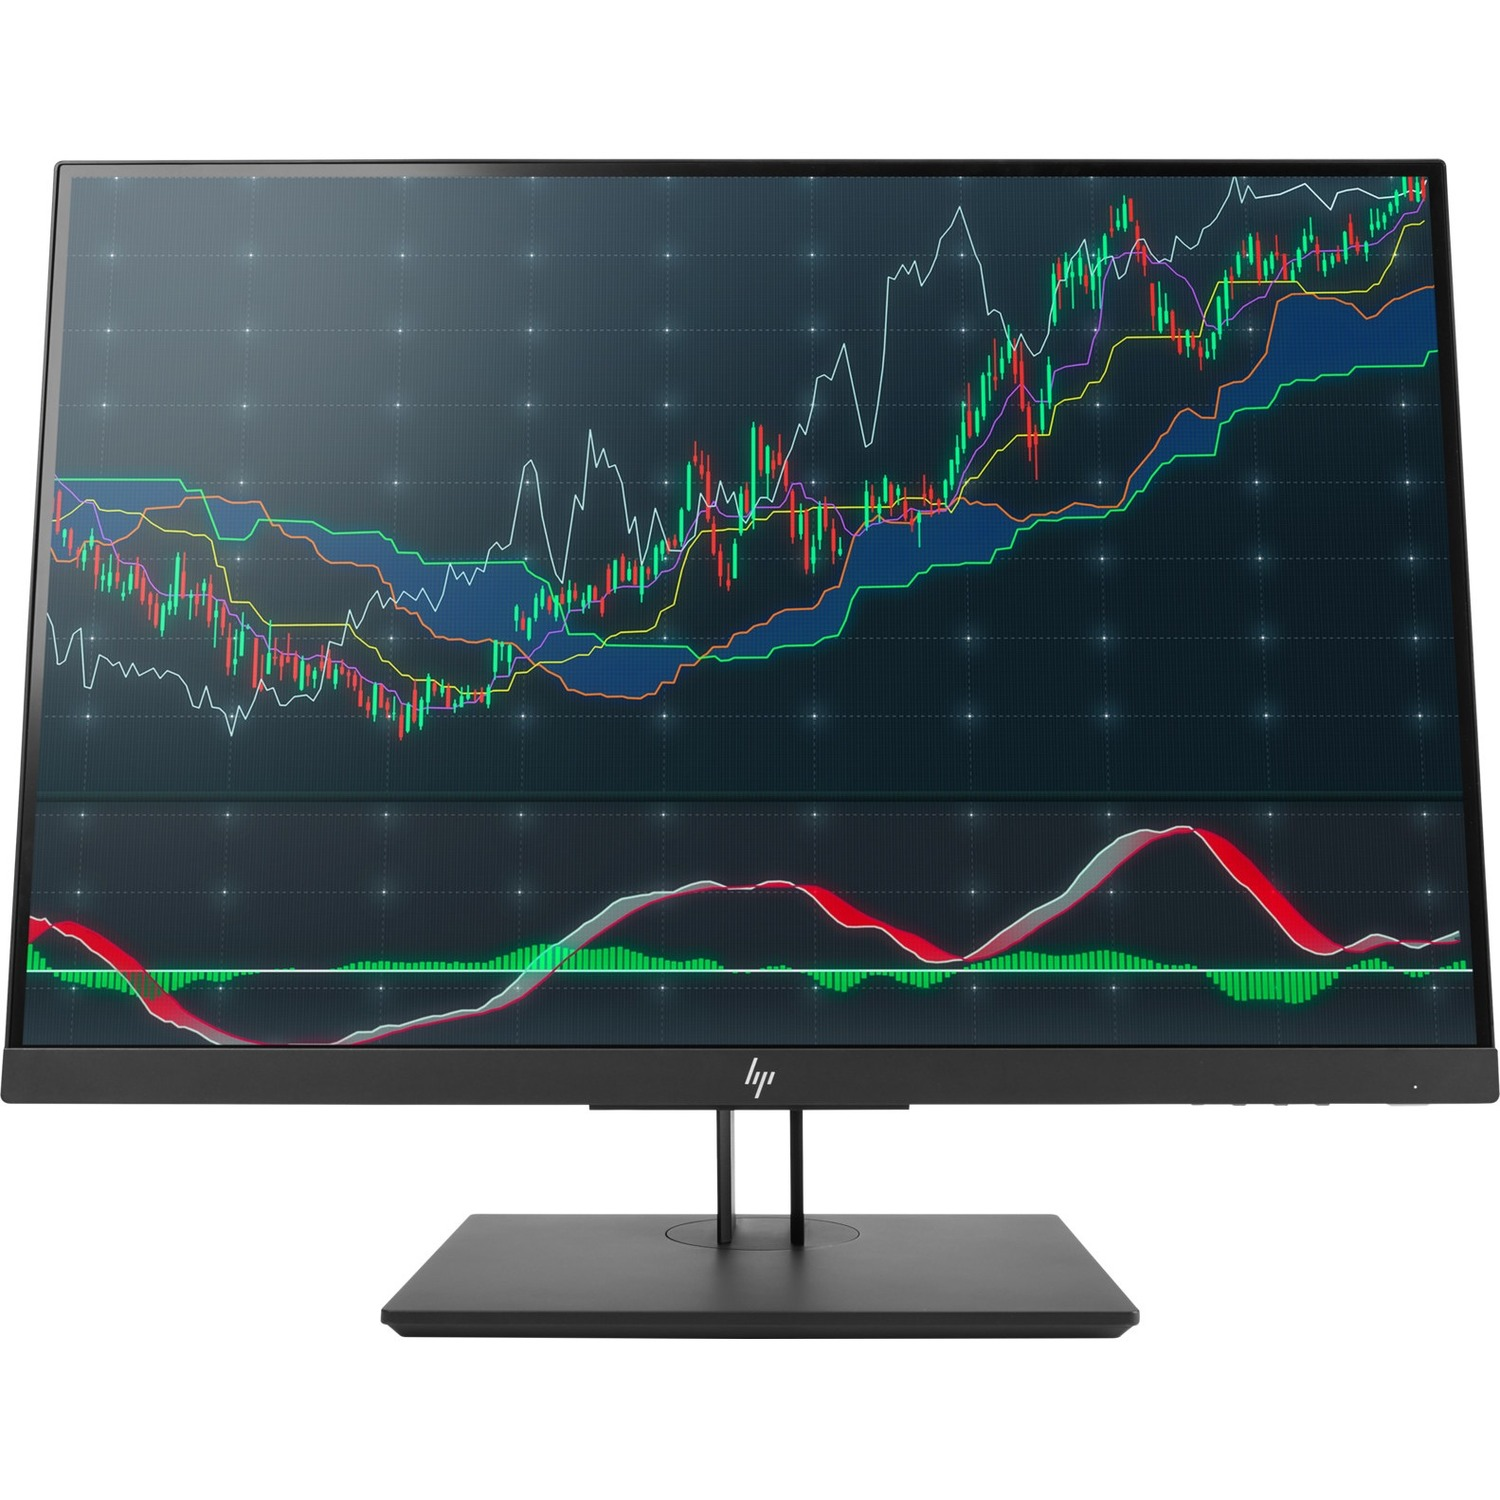 HP Business Z24n G2 61 cm 24inch LED LCD Monitor - 16:10 - 5 ms GTG